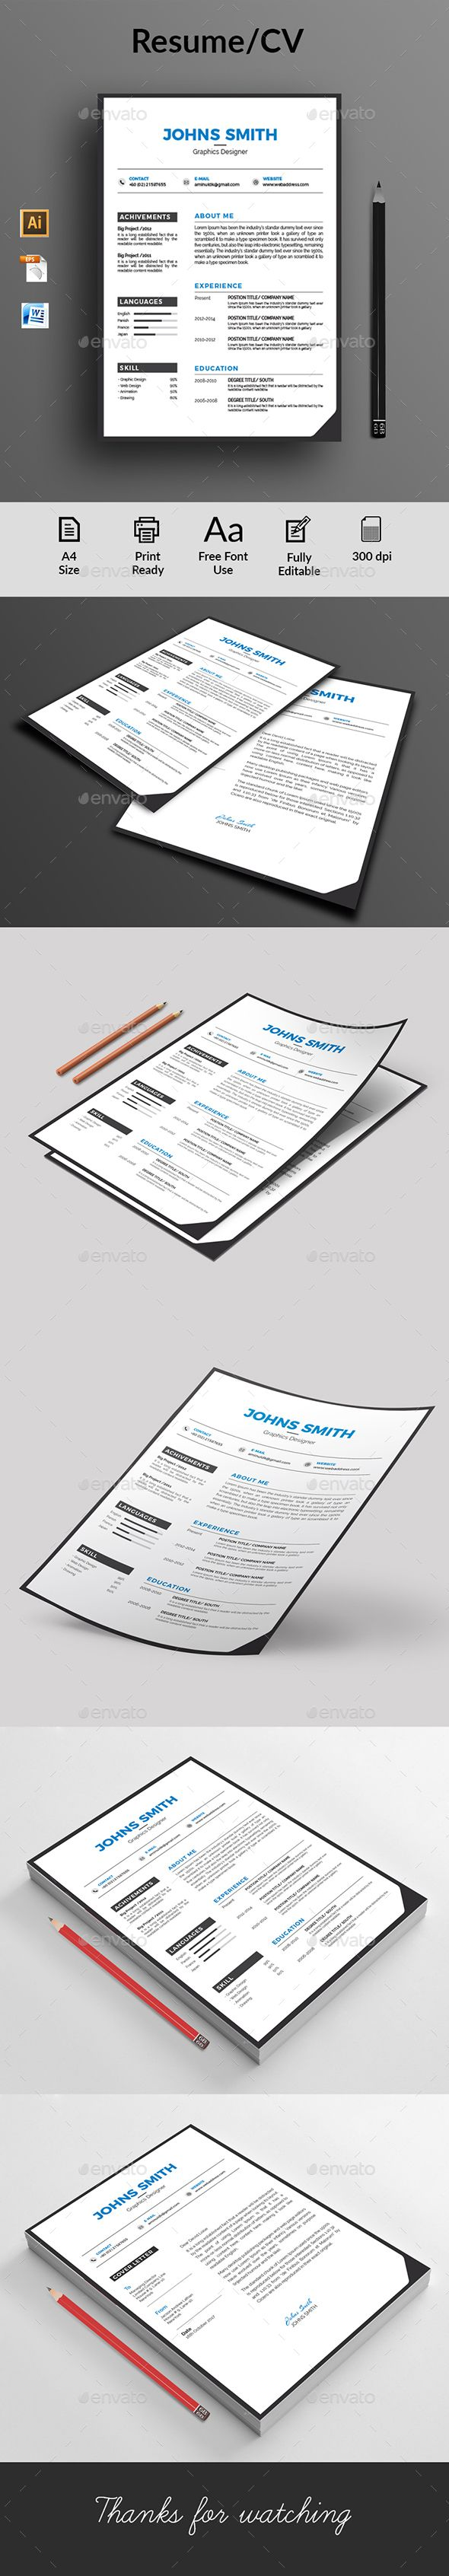 Clean Resume Download%0A  simple  minimal  Resume  CV  template  design  download  https